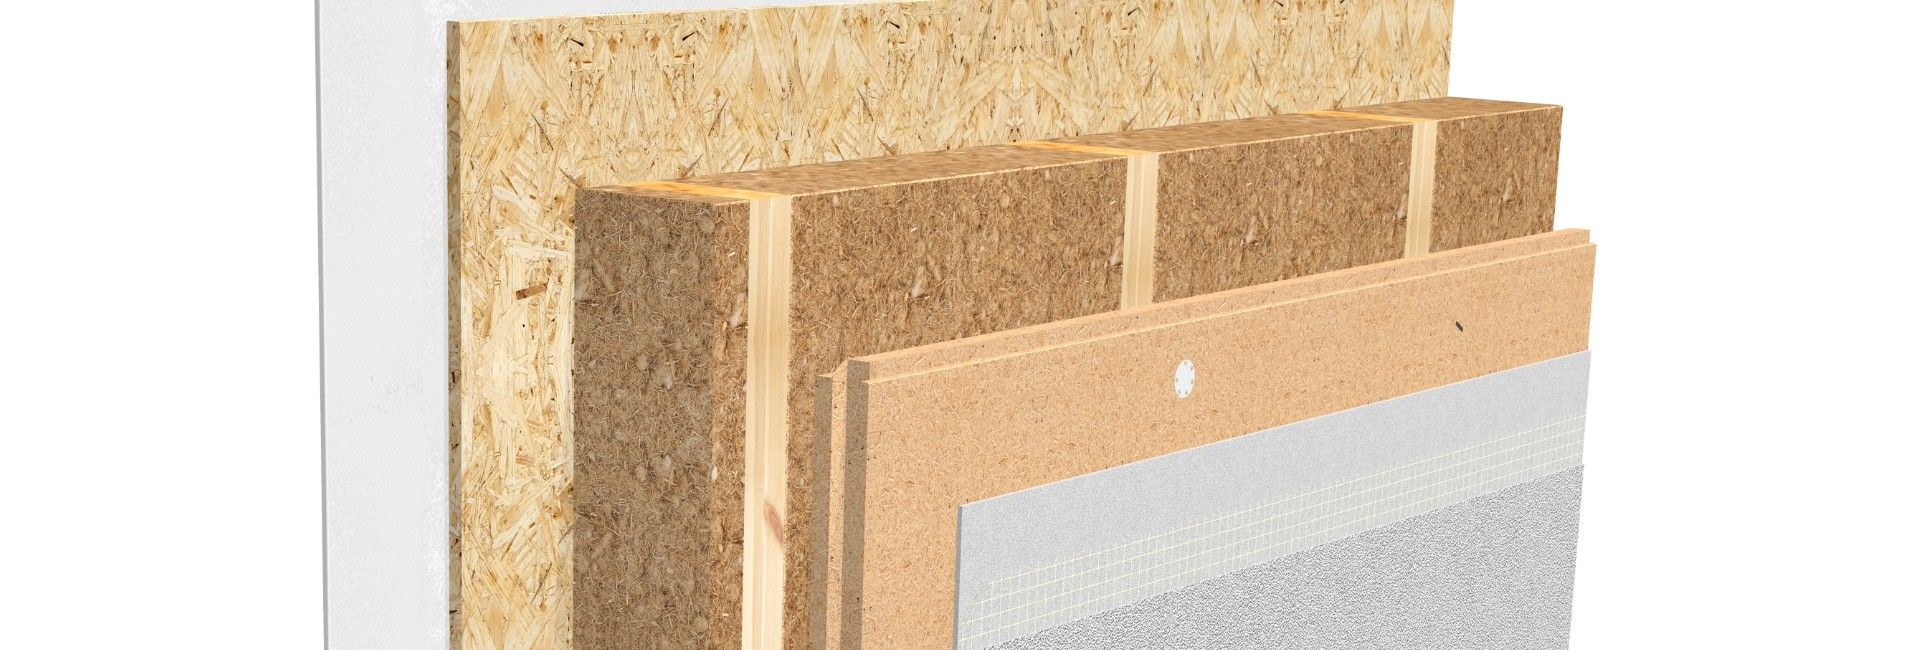 AGEPAN® THD Putz 050 thermal insulation composite systems